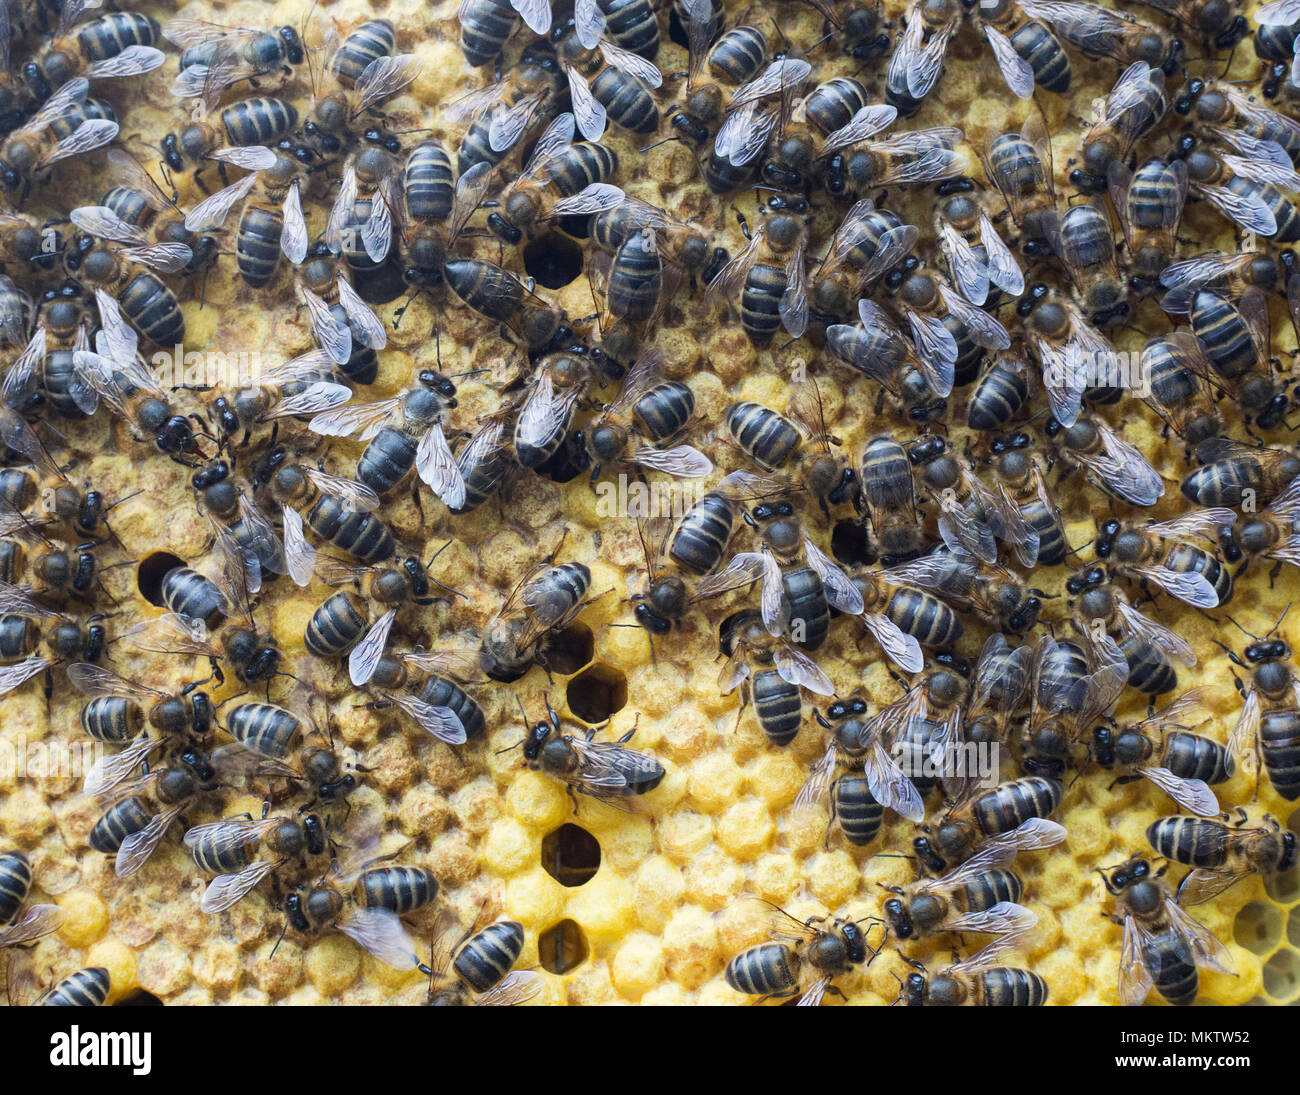 Spanish Honey Bees 'Apis mellifera' on comb in Andalucia, Spain - Stock Image